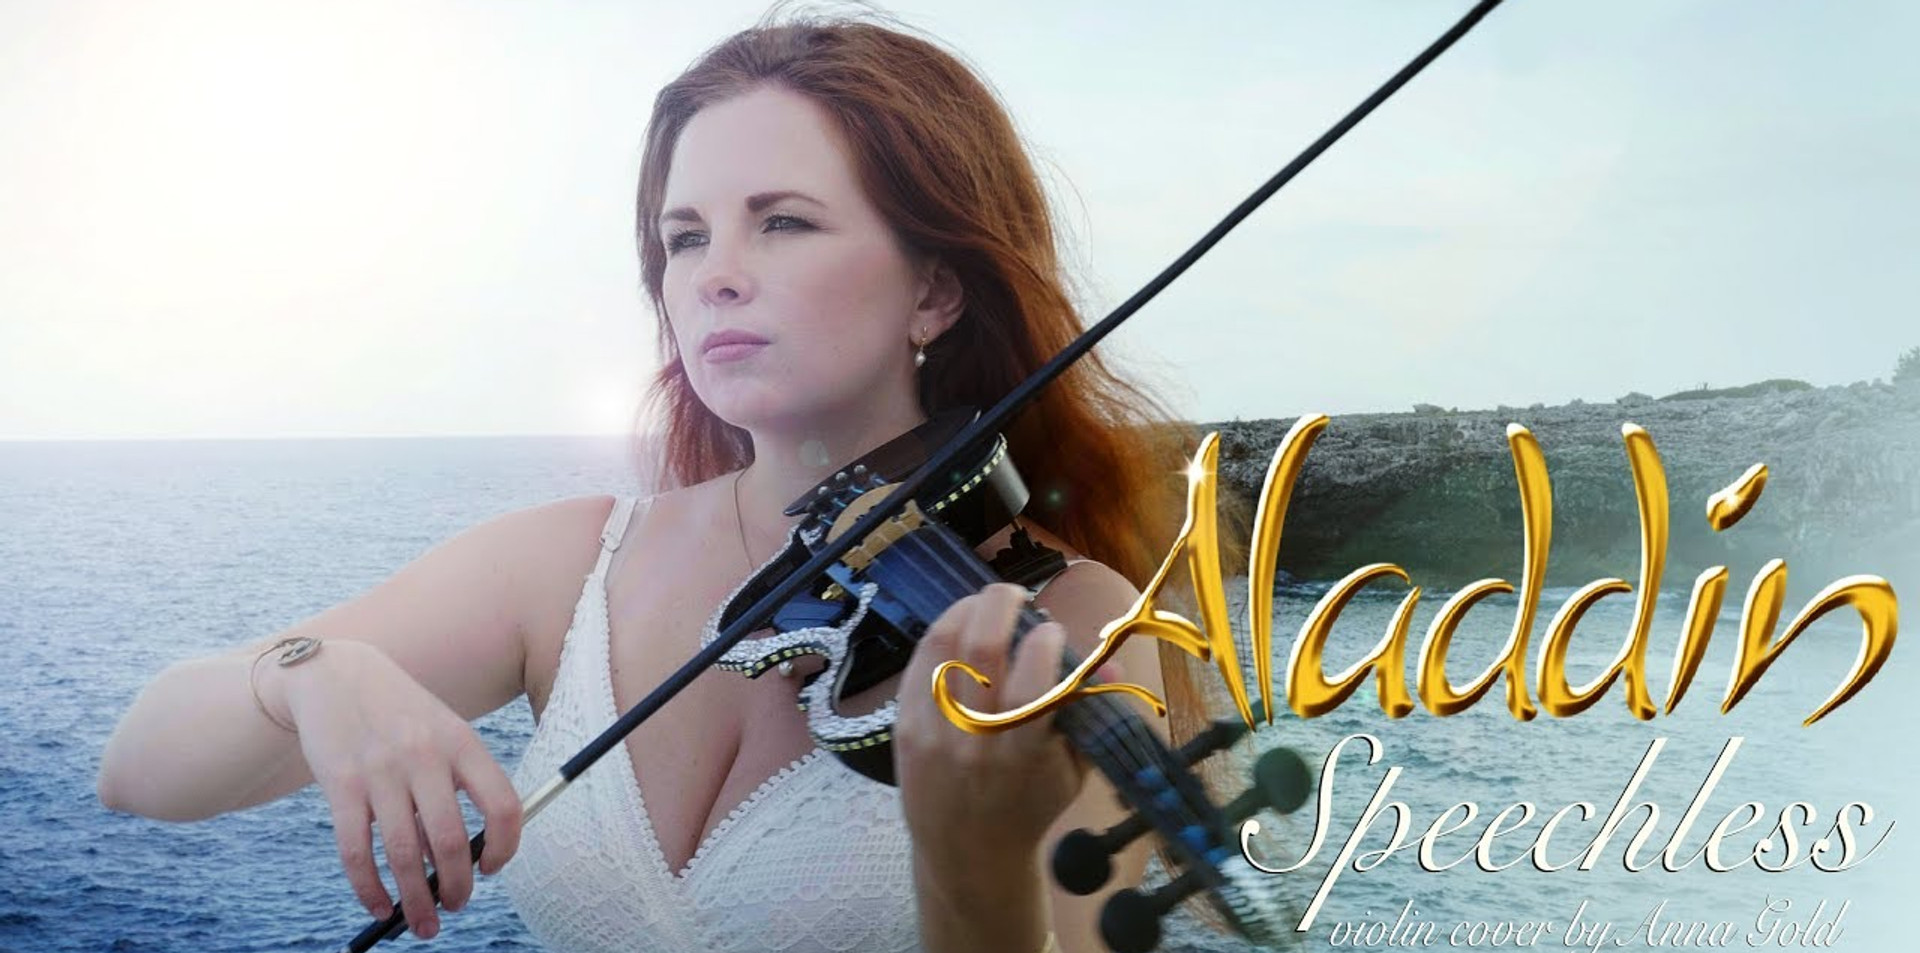 Speechless from Aladdin, Disney - violin cover by Violinist Anna Gold